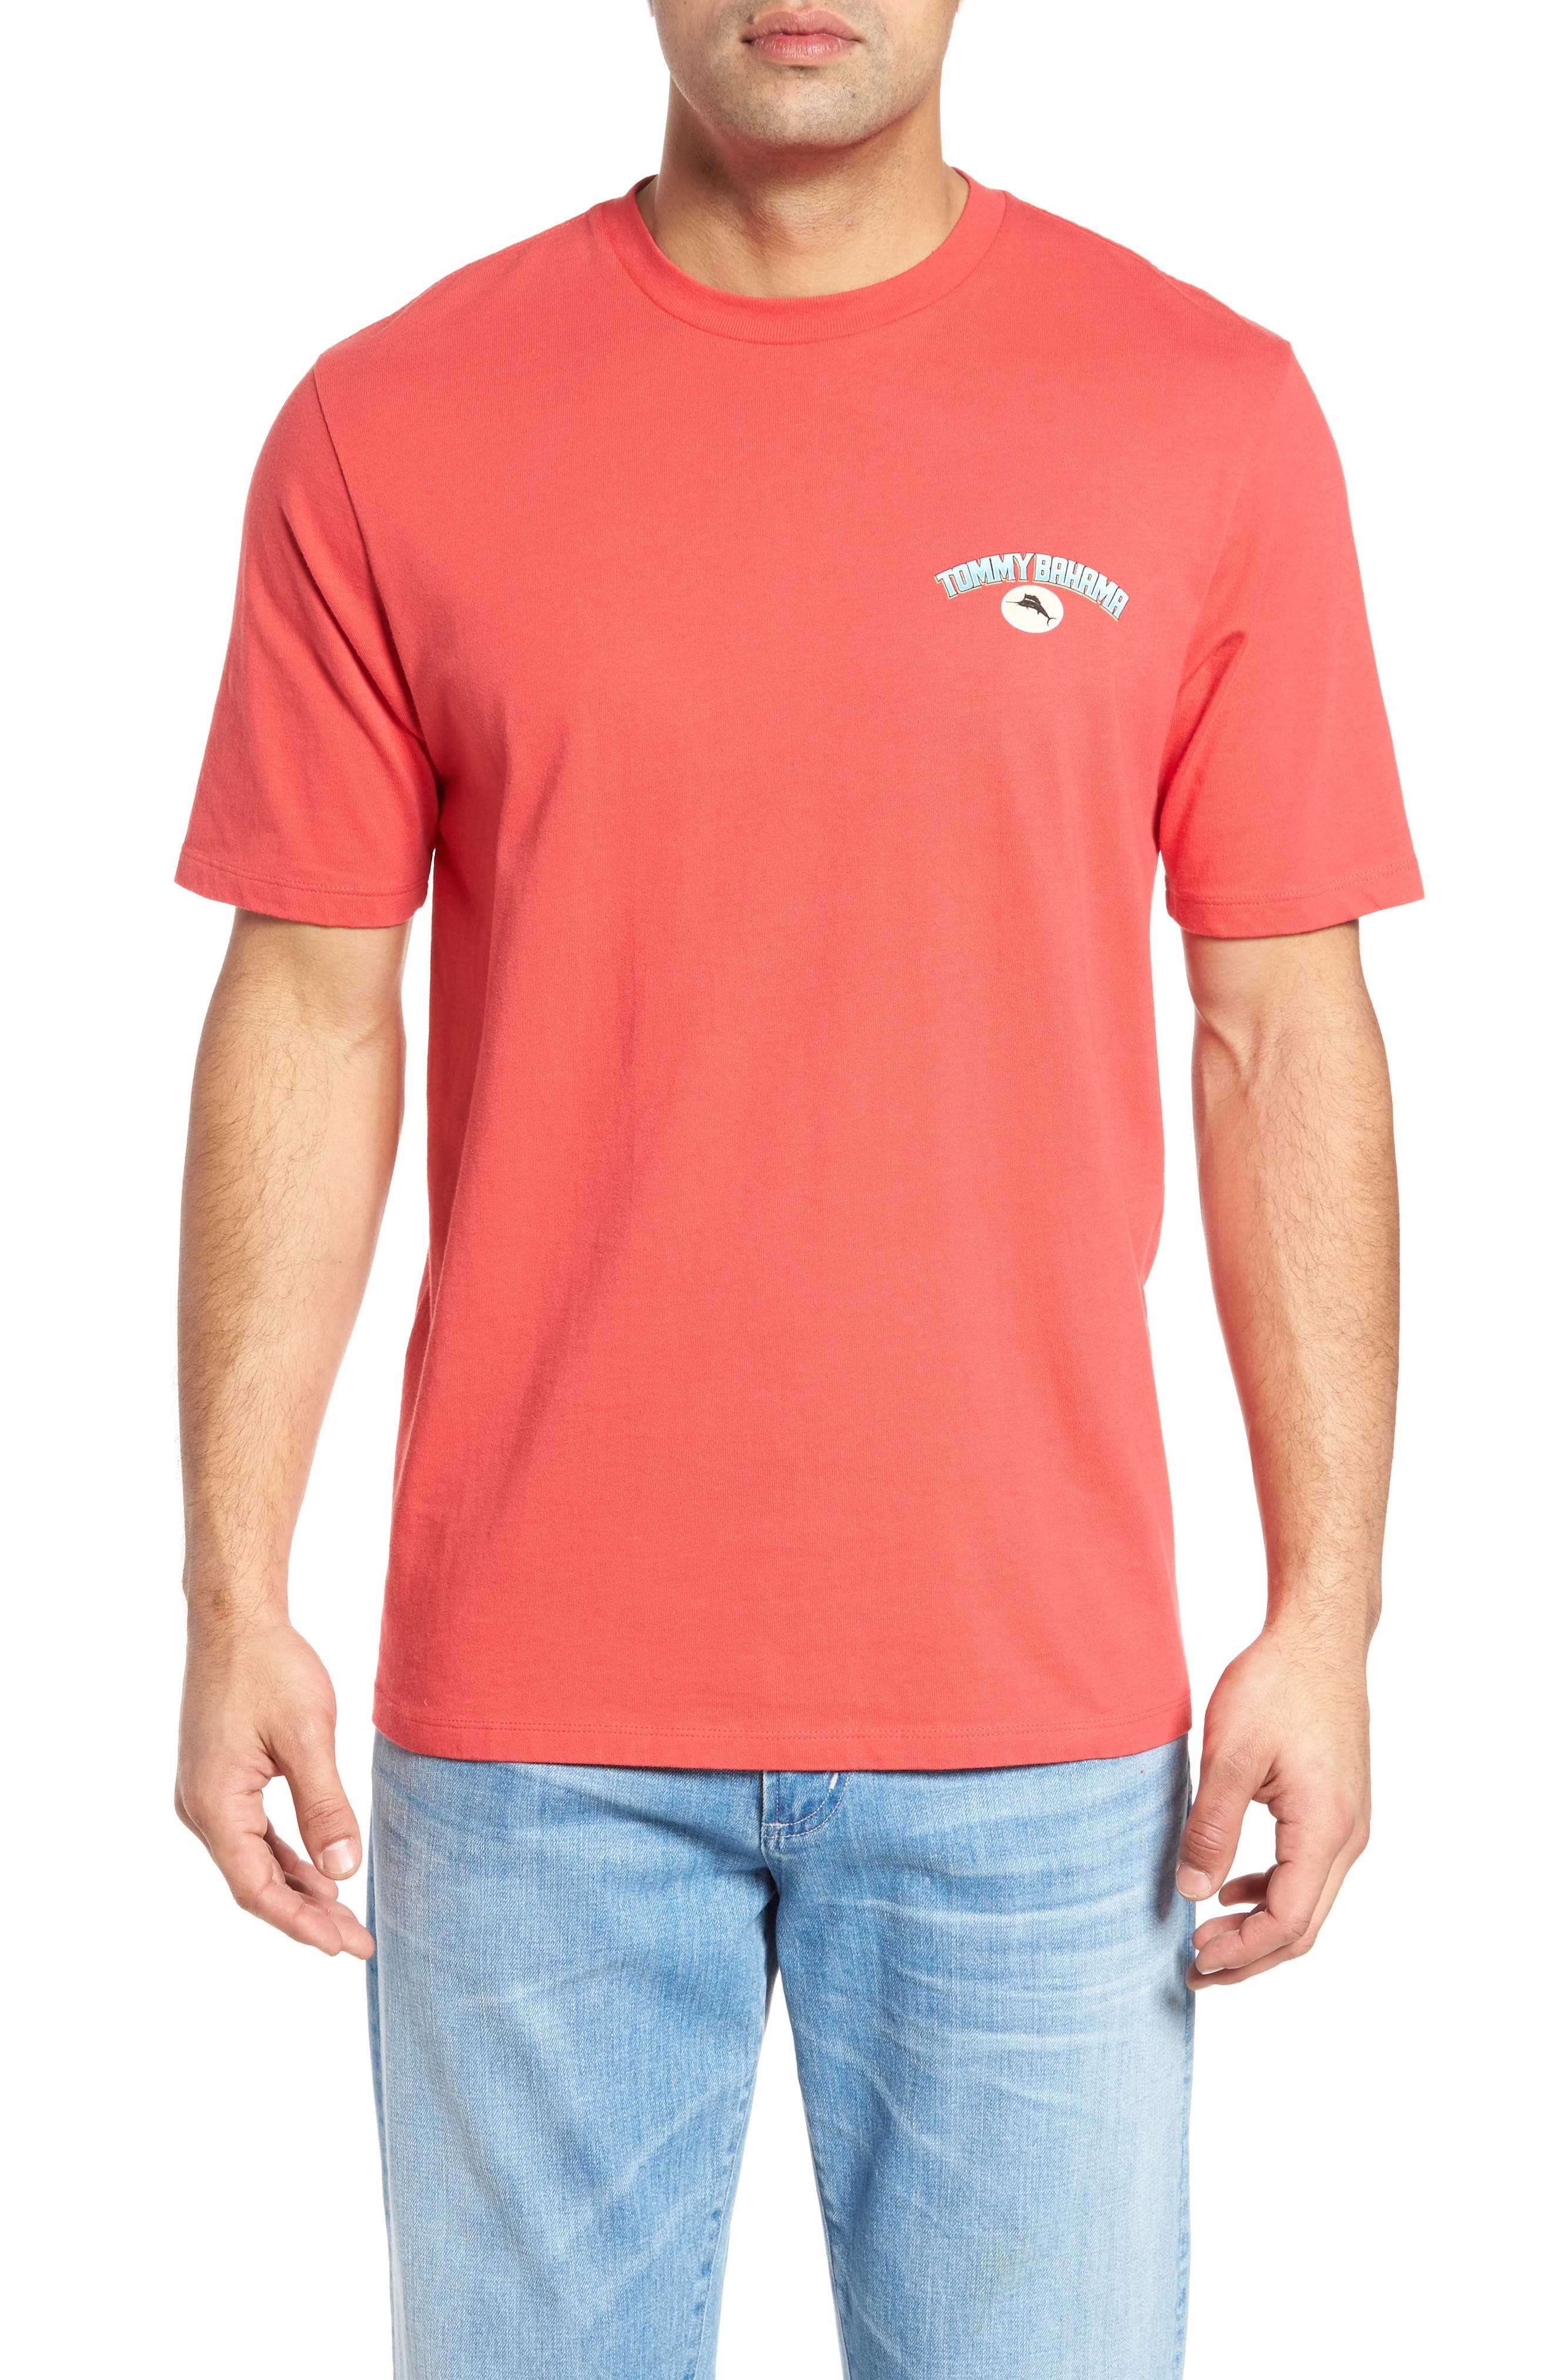 Grate Outdoors T-Shirt,                         Main,                         color, Pomodoro